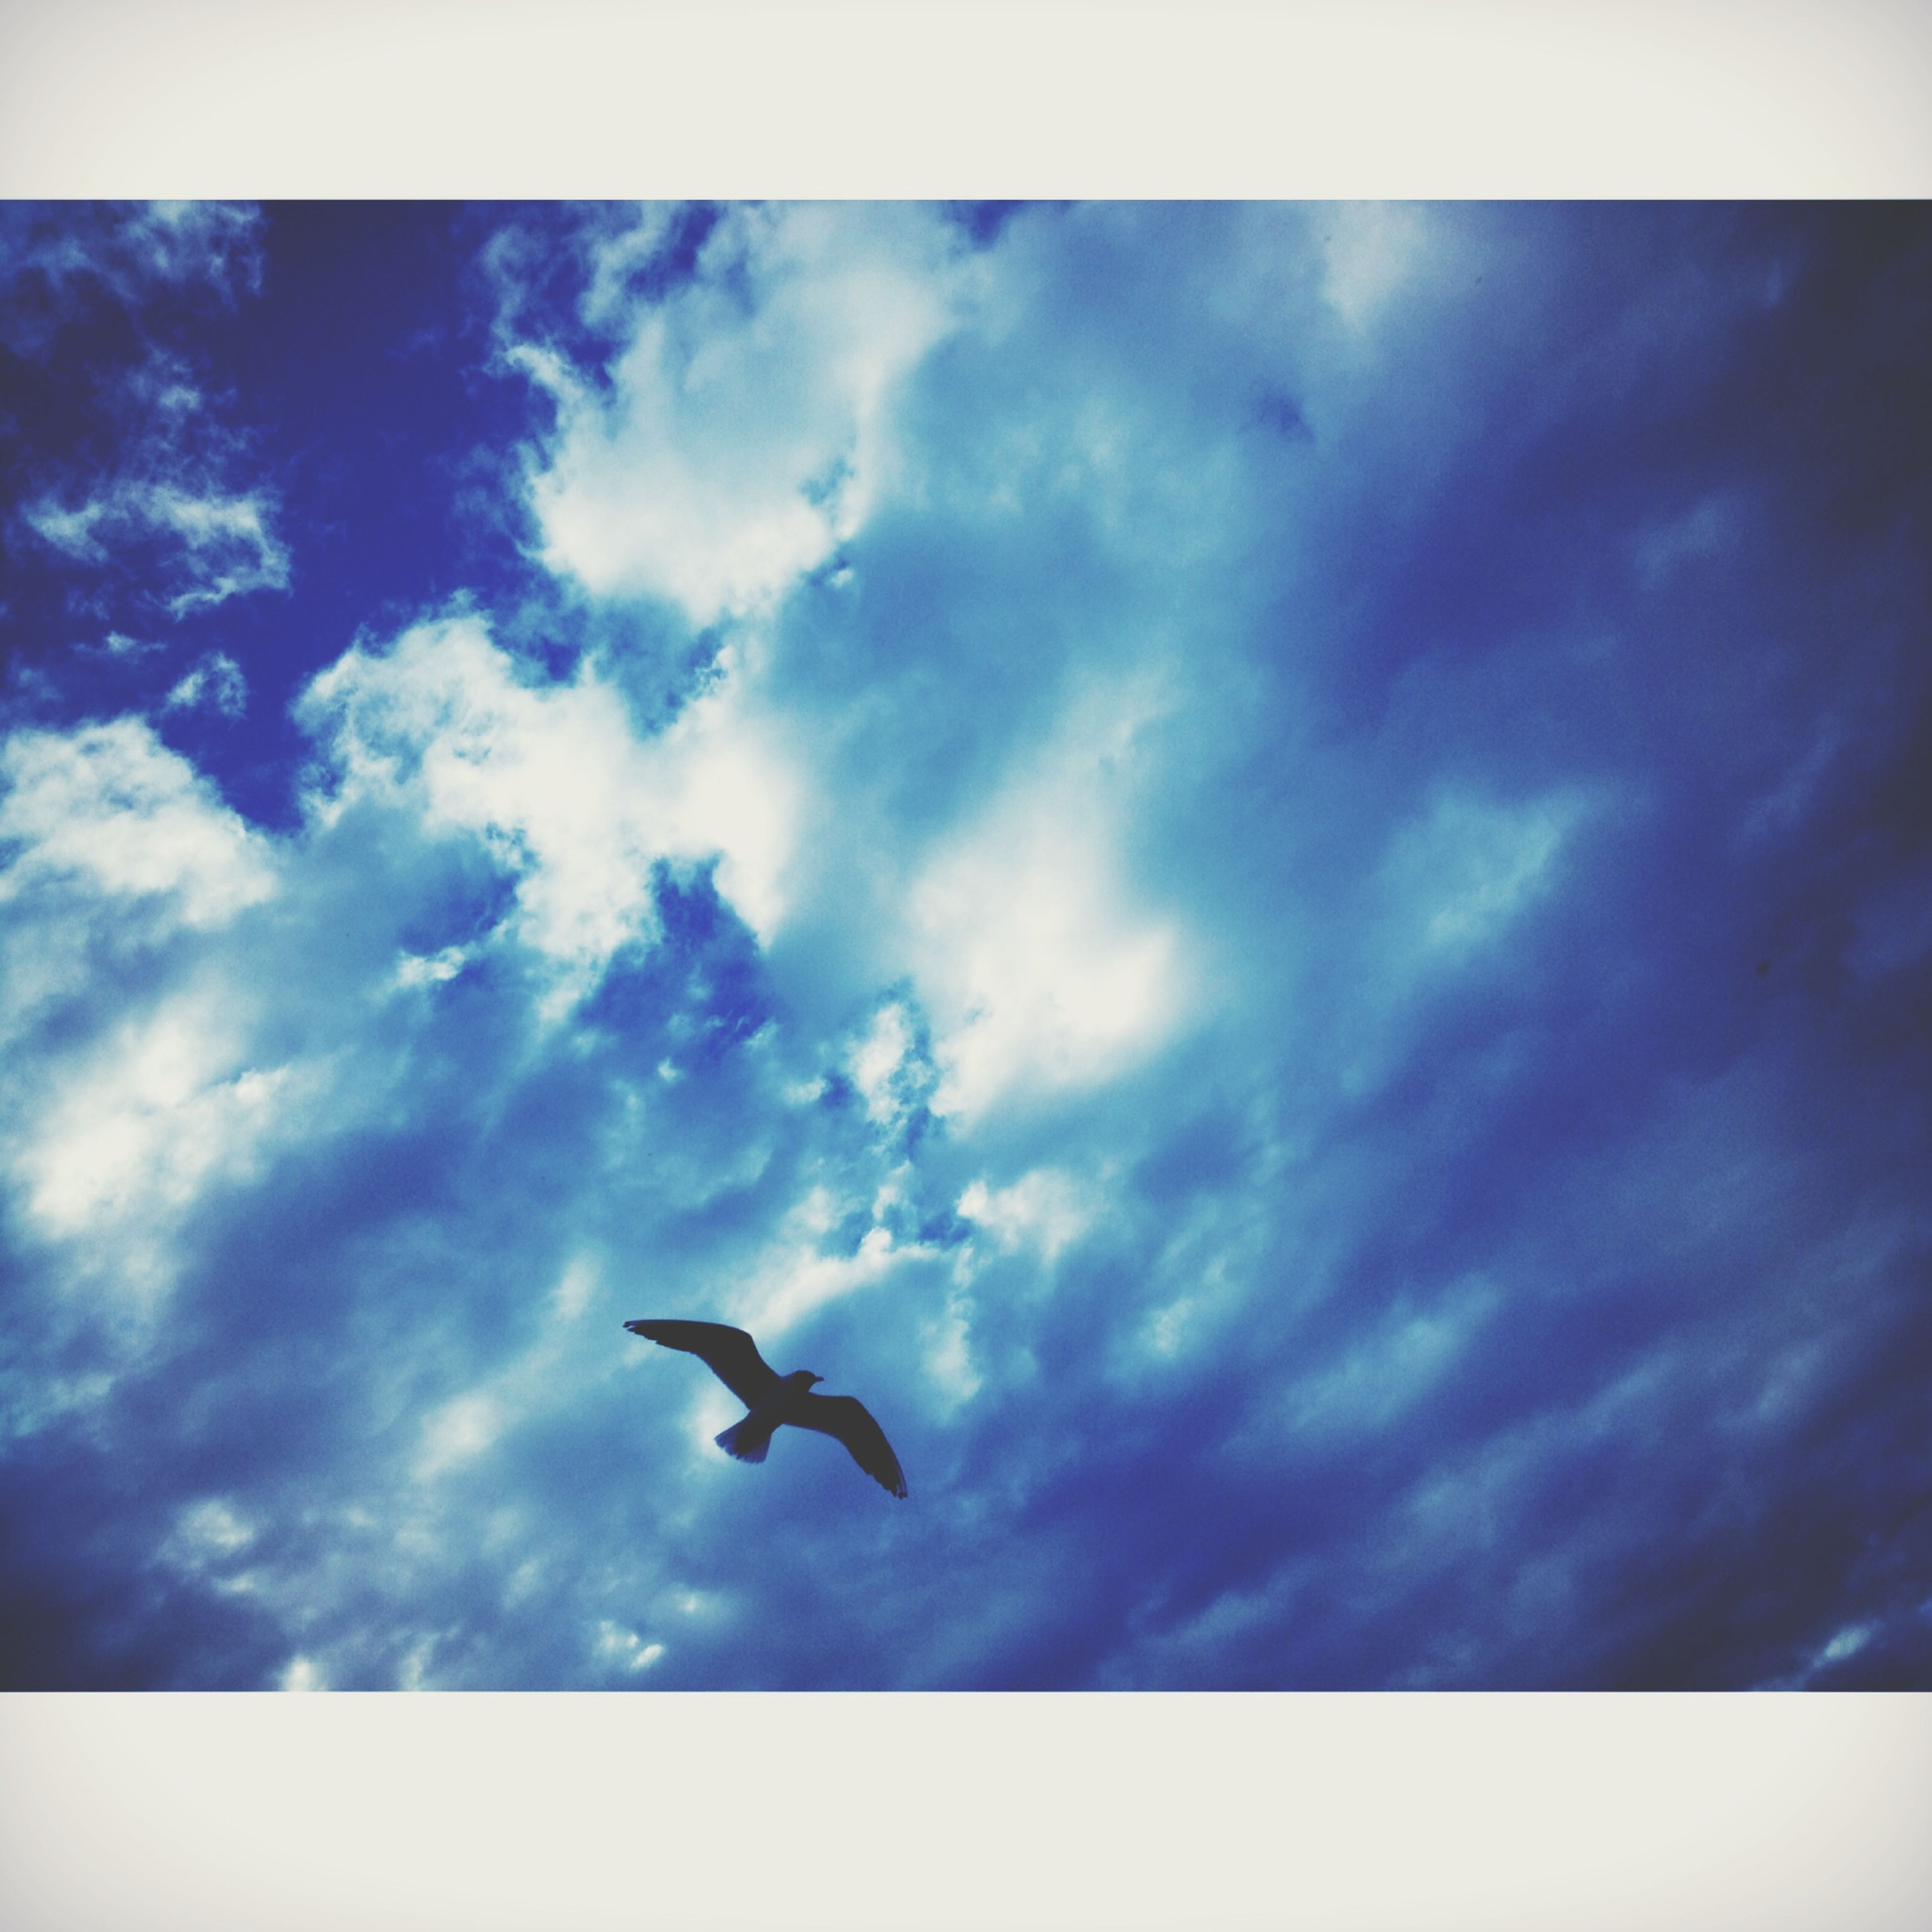 bird, animal themes, animals in the wild, wildlife, flying, low angle view, sky, spread wings, one animal, mid-air, cloud - sky, seagull, nature, cloud, zoology, silhouette, motion, blue, outdoors, no people